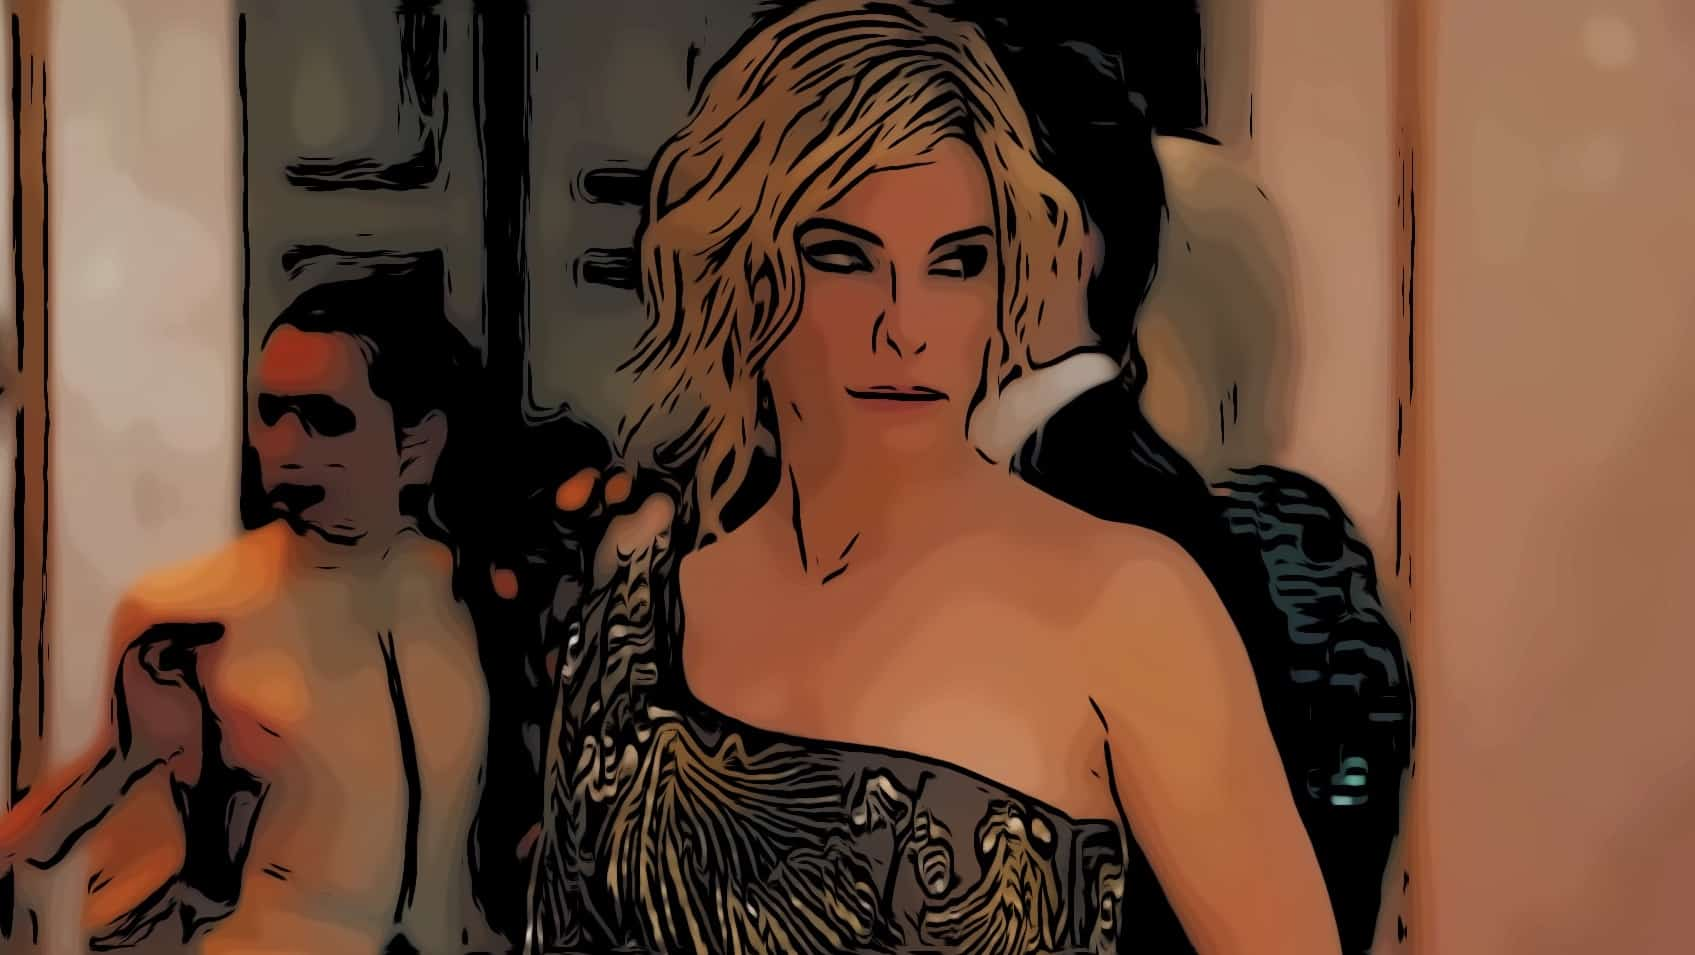 Scene from Ocean's 8 for Sandra Bullock movies post.